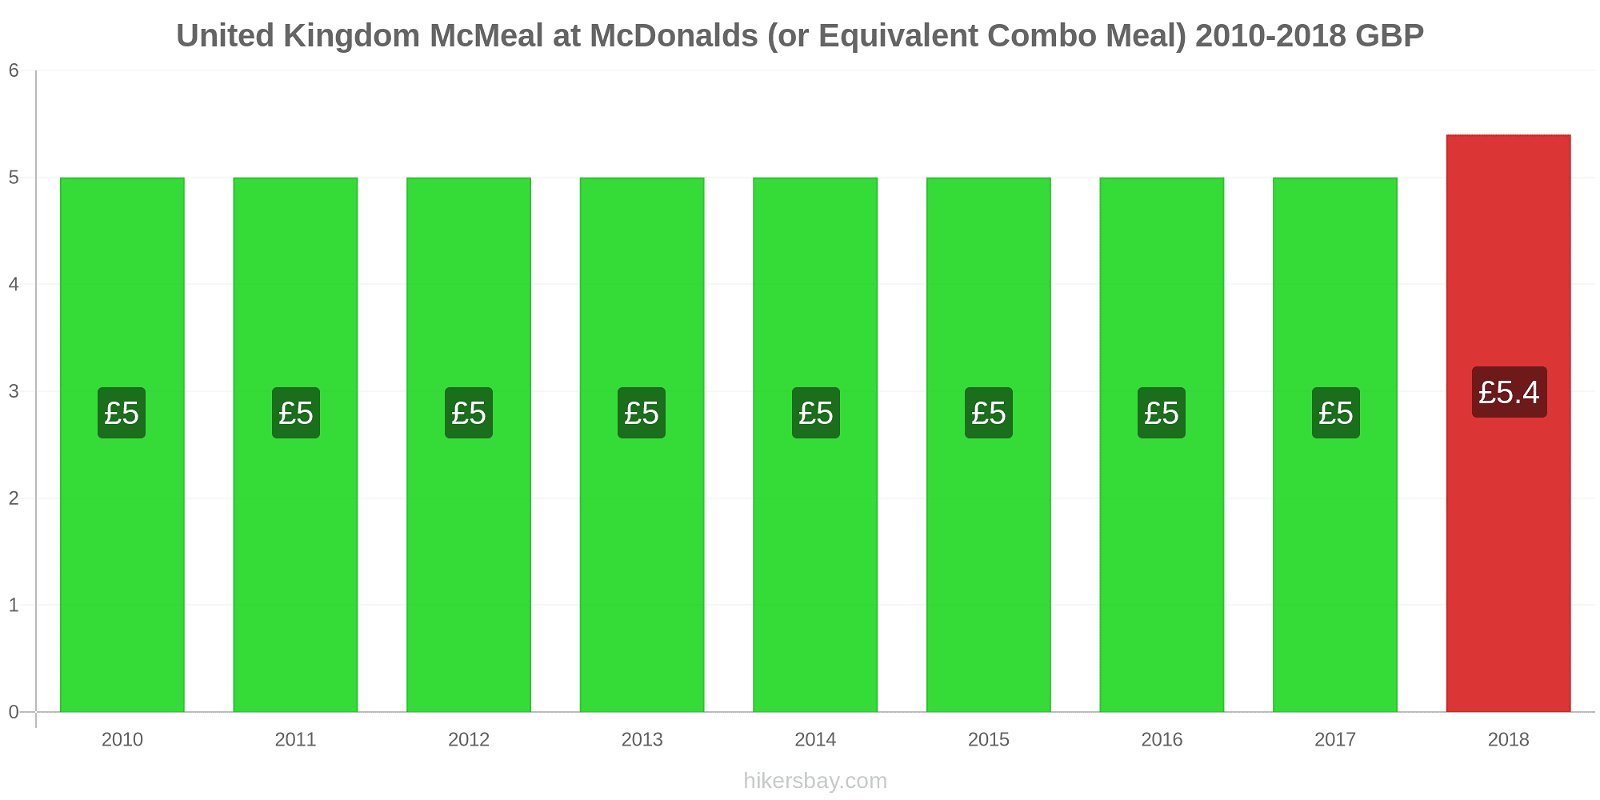 United Kingdom price changes McMeal at McDonalds (or Equivalent Combo Meal) hikersbay.com